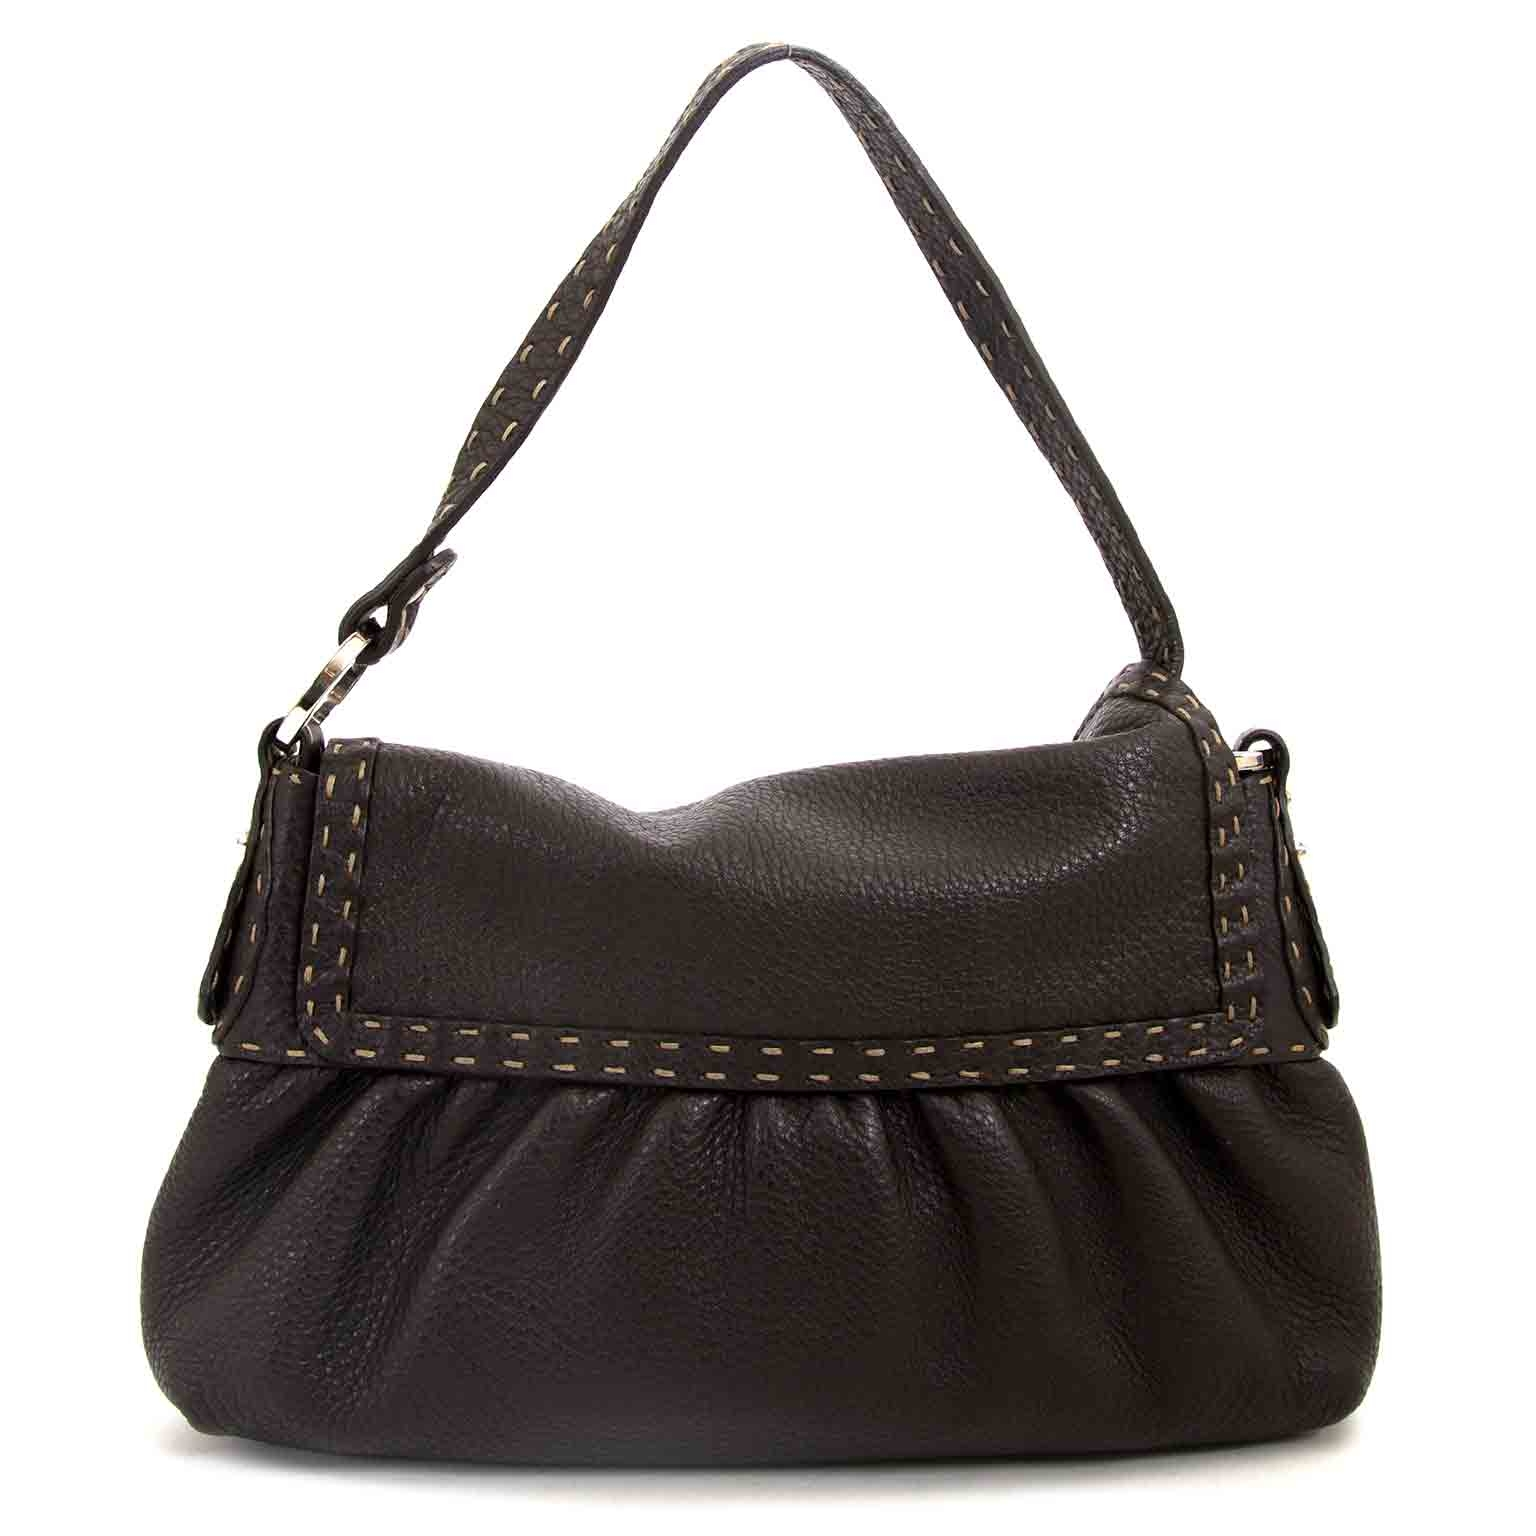 buy Fendi Brown Leather Salleria Bag at labellov pour le meilleur prix